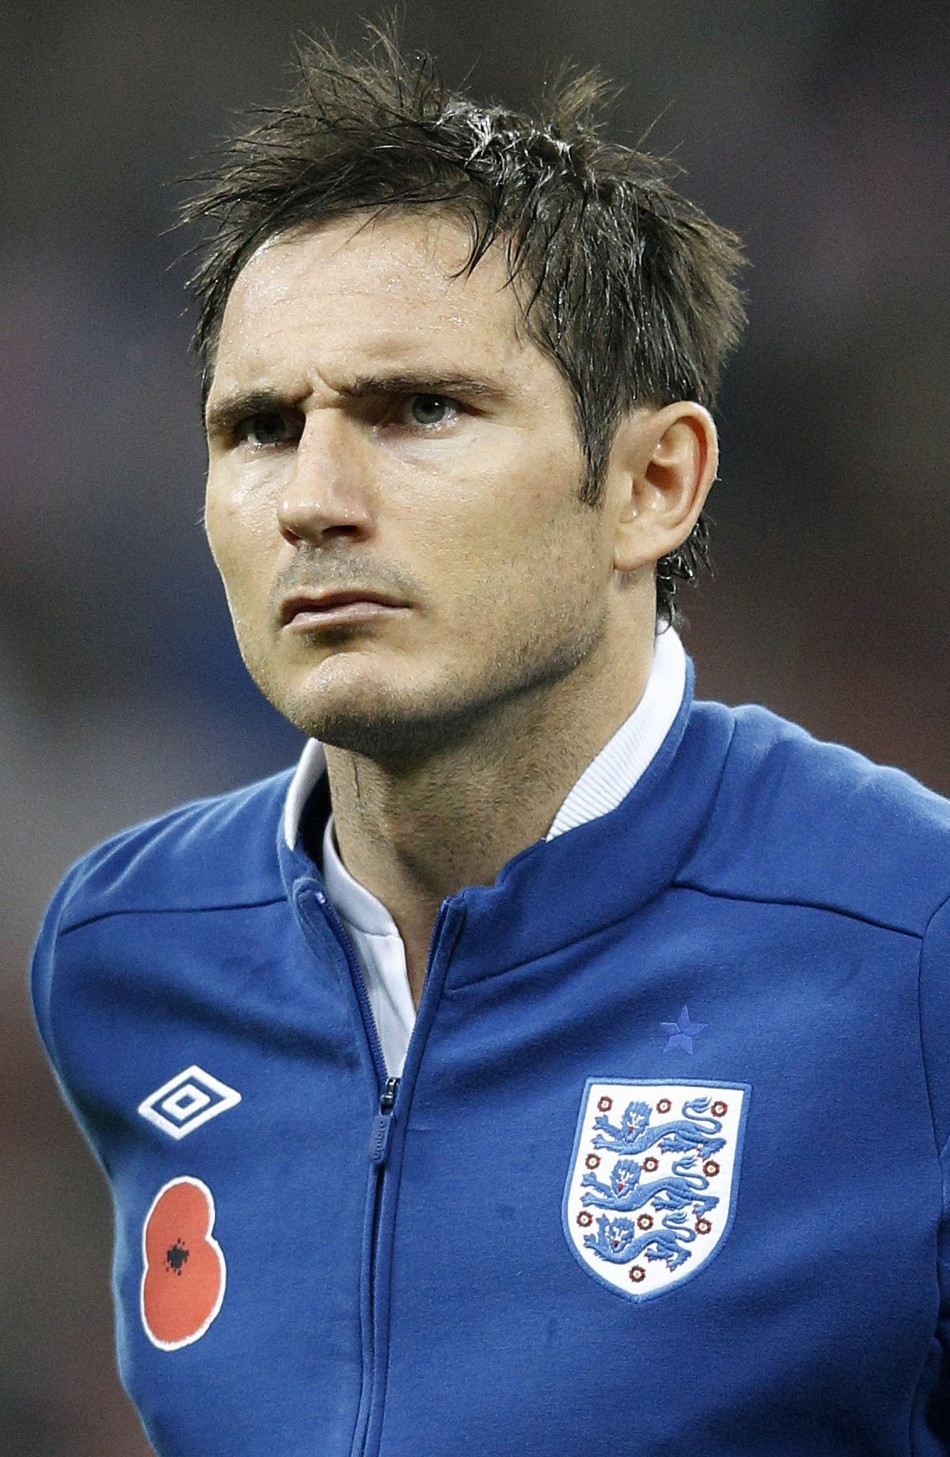 England's Lampard lines up for the national anthems before their international friendly soccer match against Spain at Wembley Stadium in London